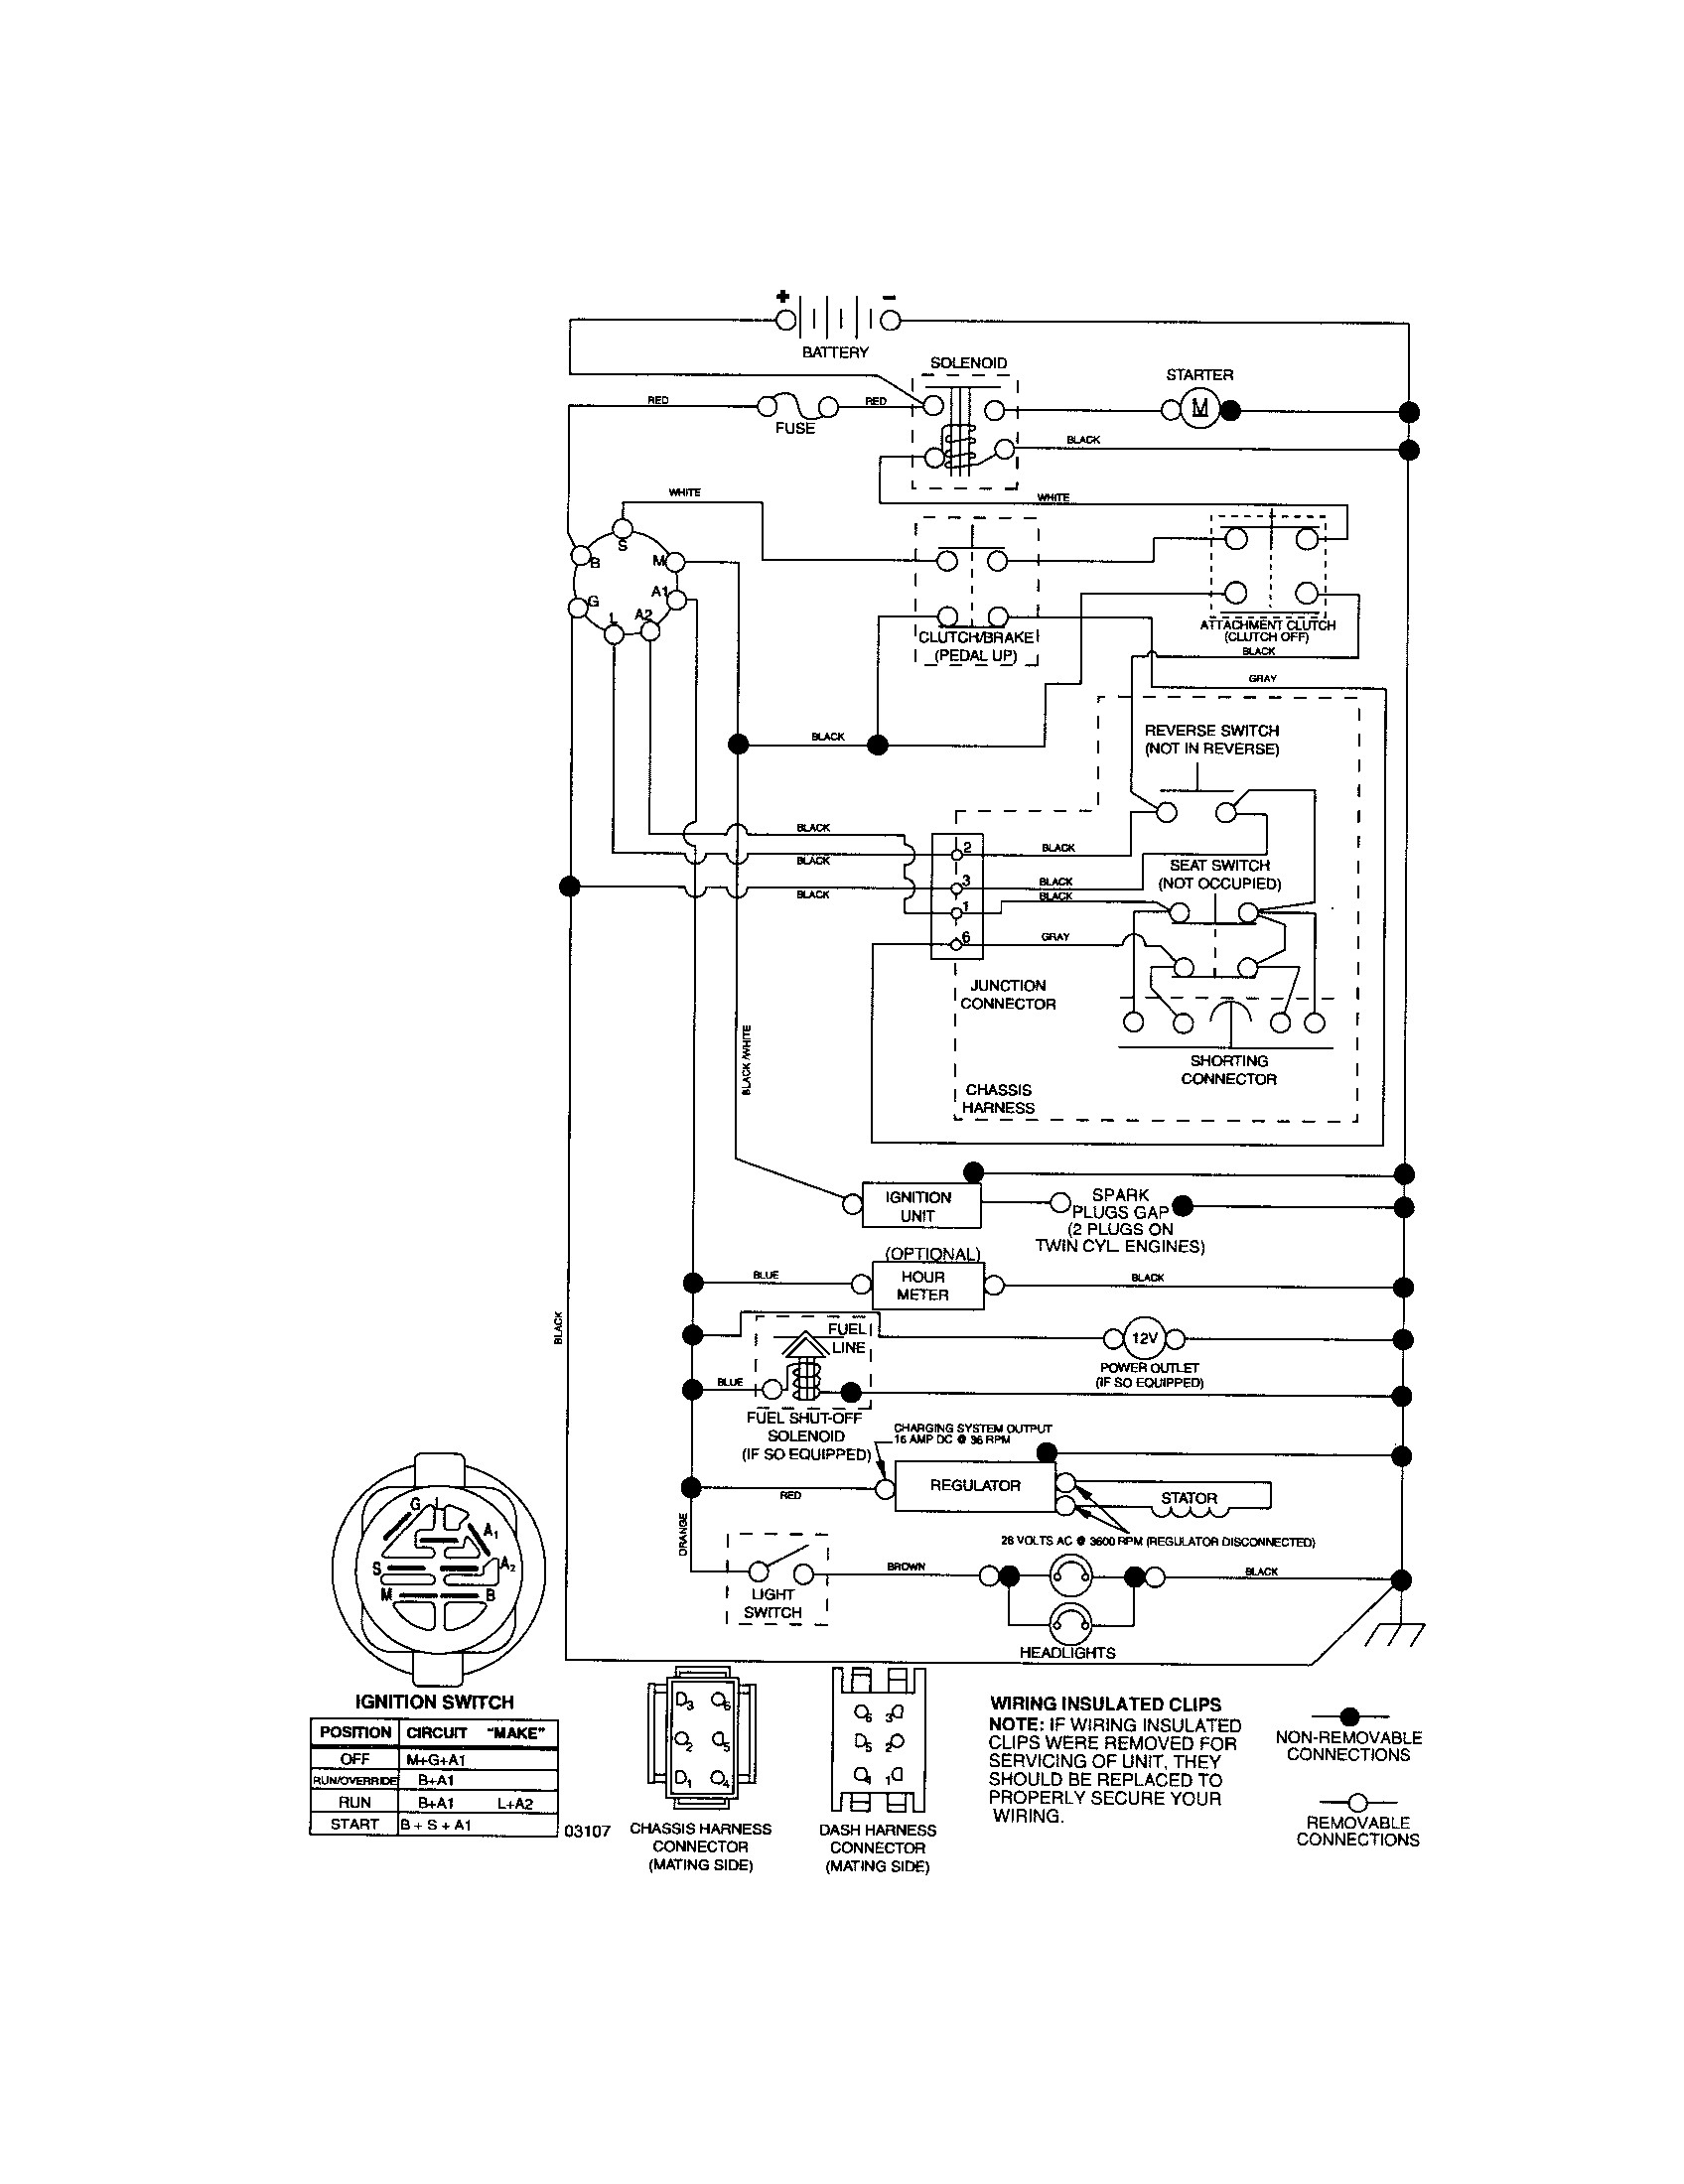 craftsman pto switch wiring diagram free wiring diagram rh  ricardolevinsmorales com Ford PTO Switch Wiring Diagram